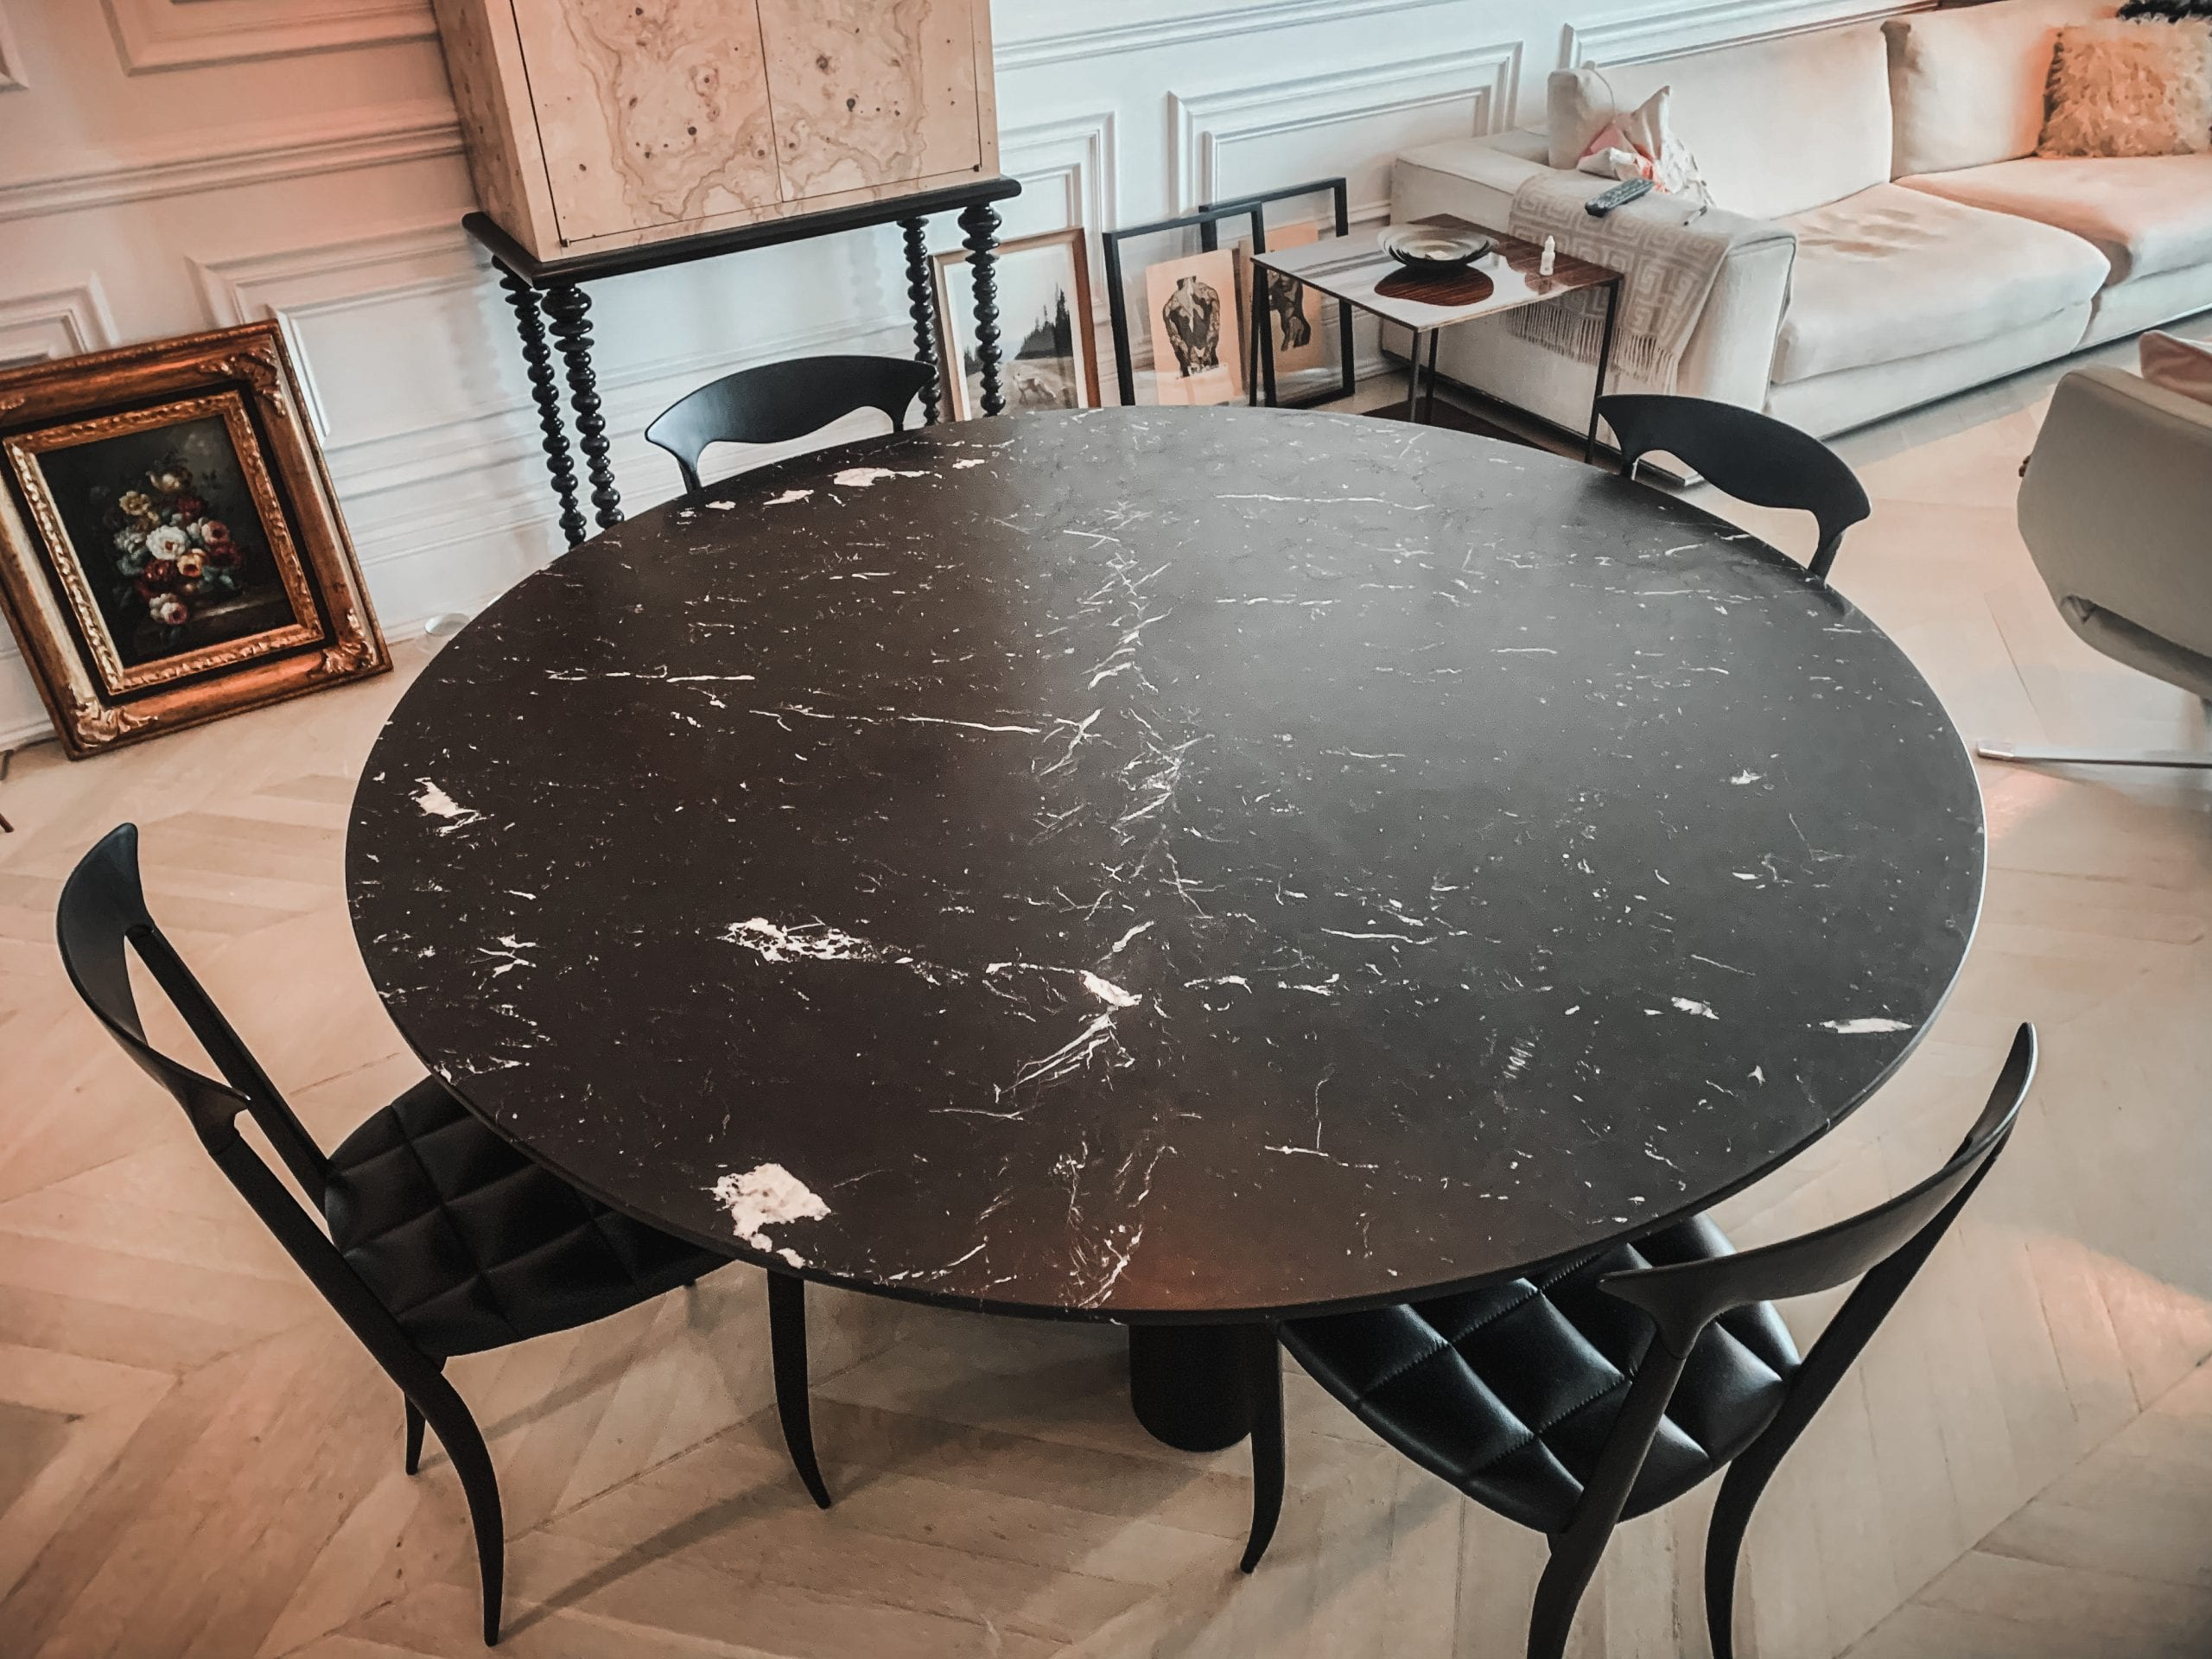 Marble and wood dining table with chairs from top